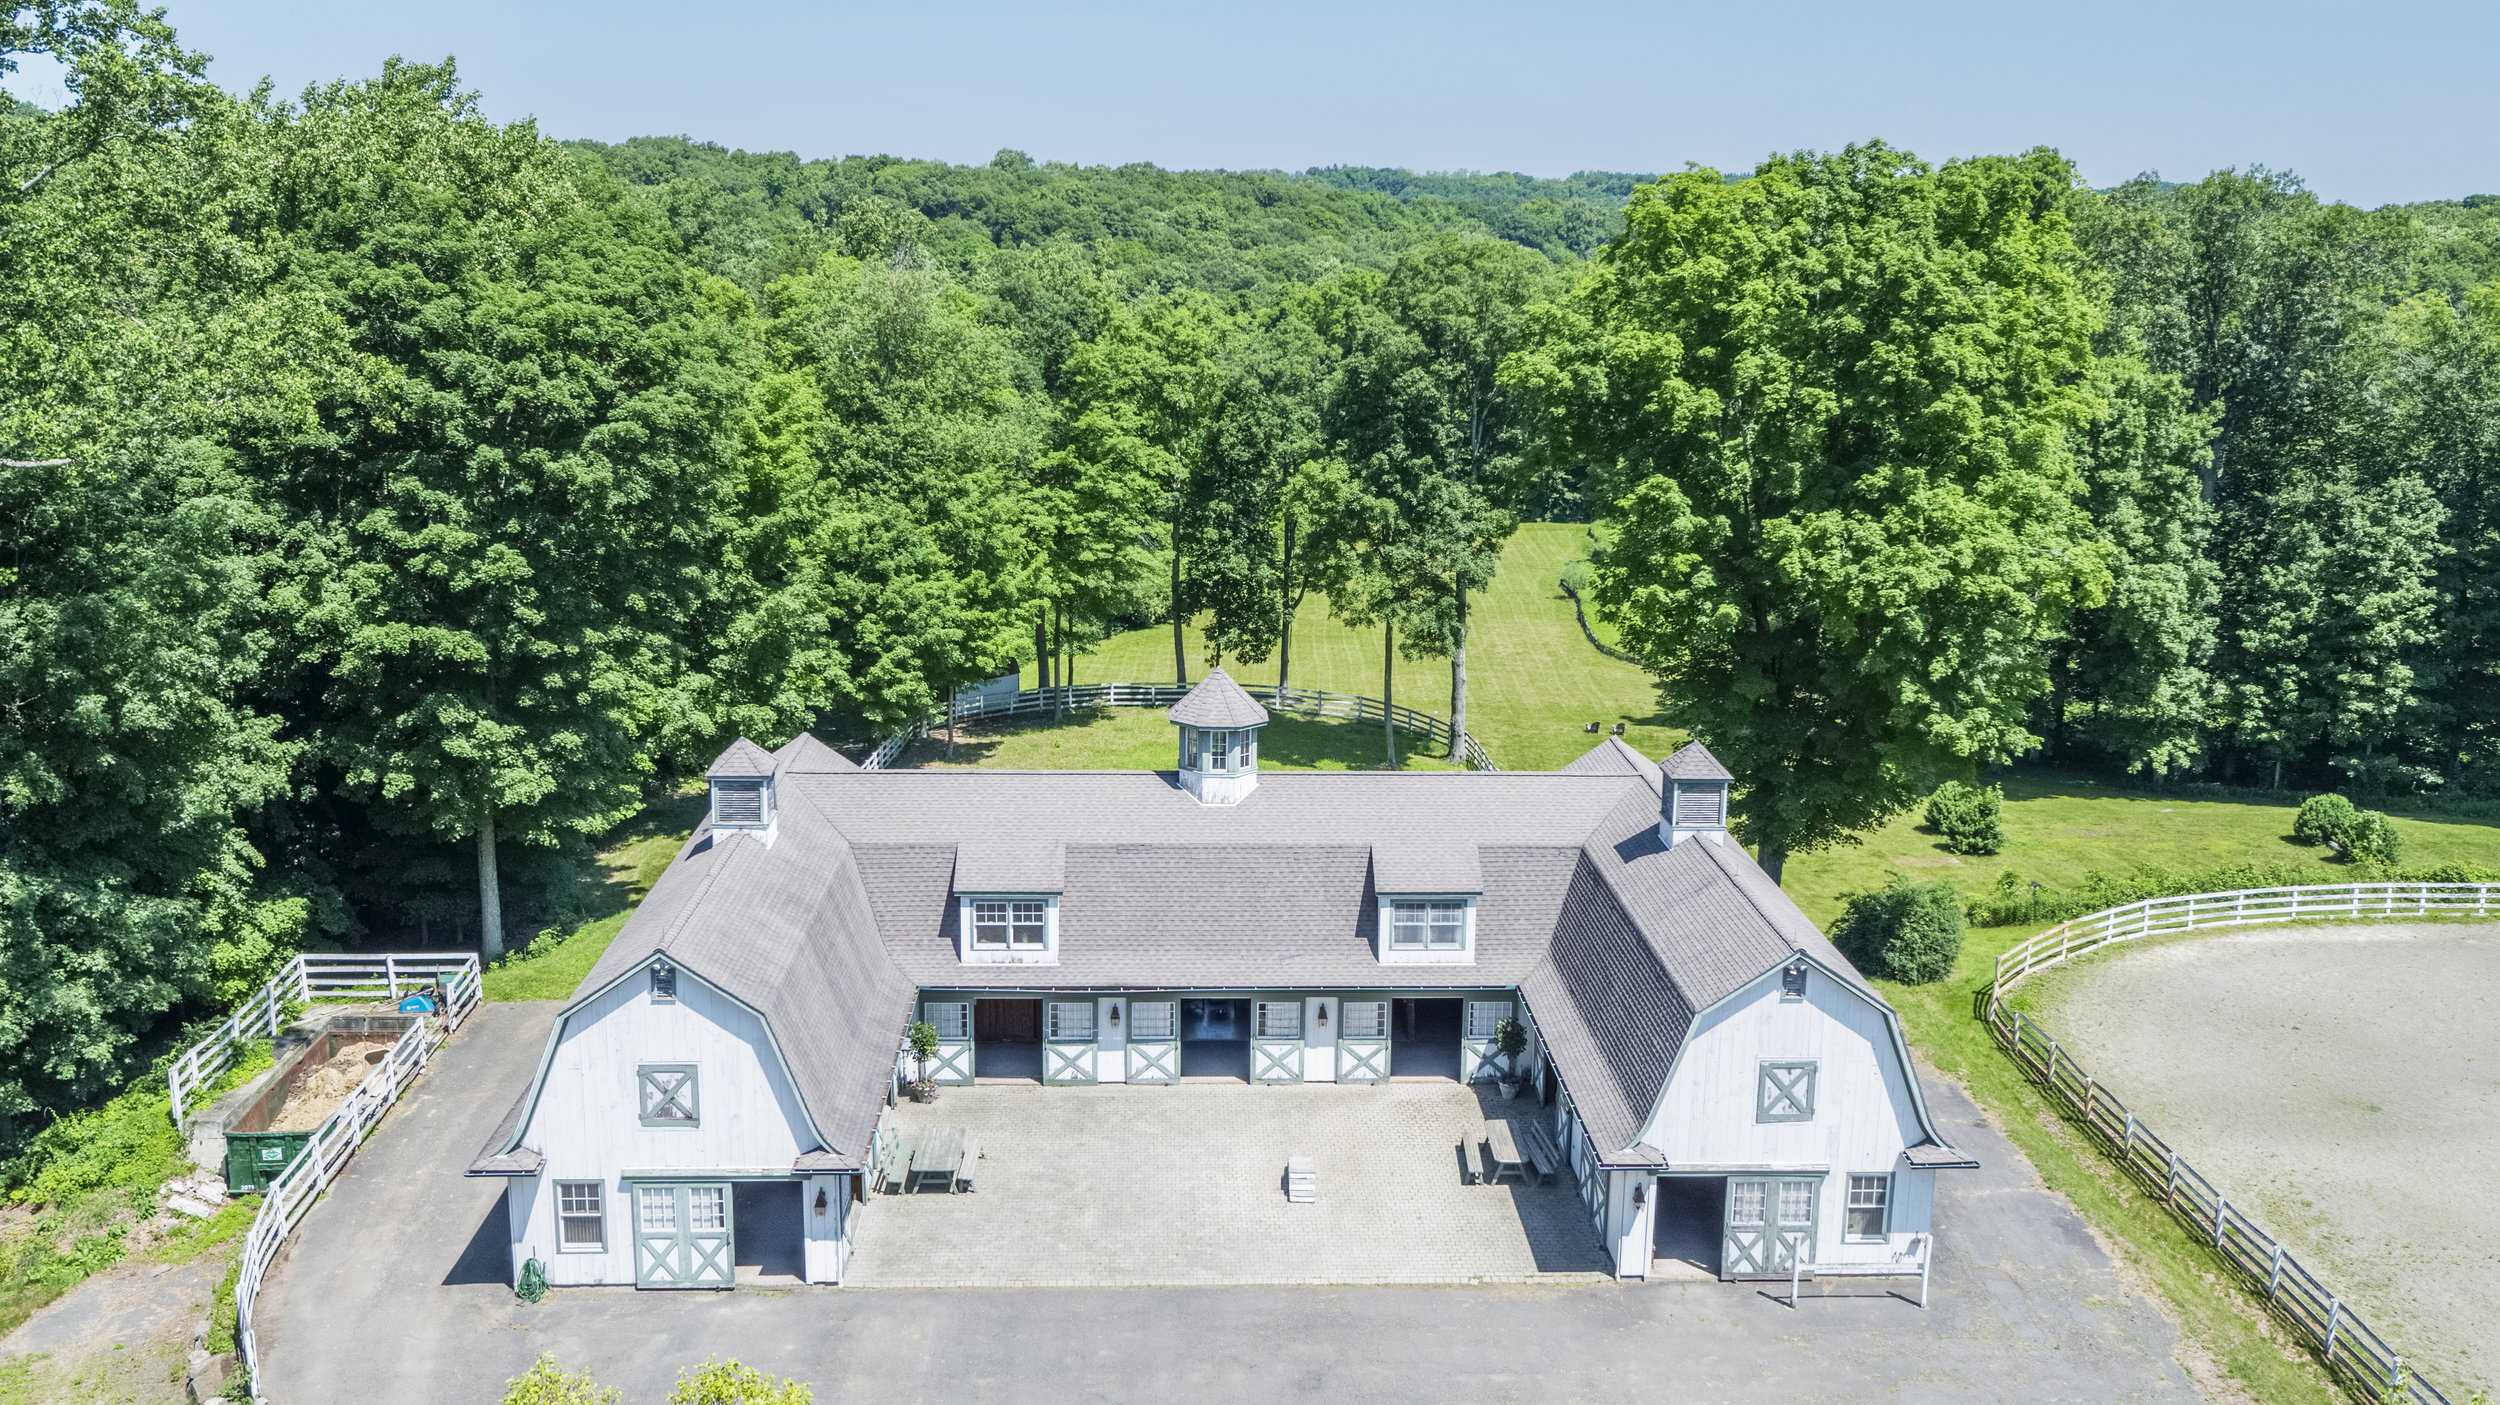 Tour The Sprawling Grounds of This 30+ Acre Equestrian Estate On Greenwich, CT's Prestigious Round Hill Road